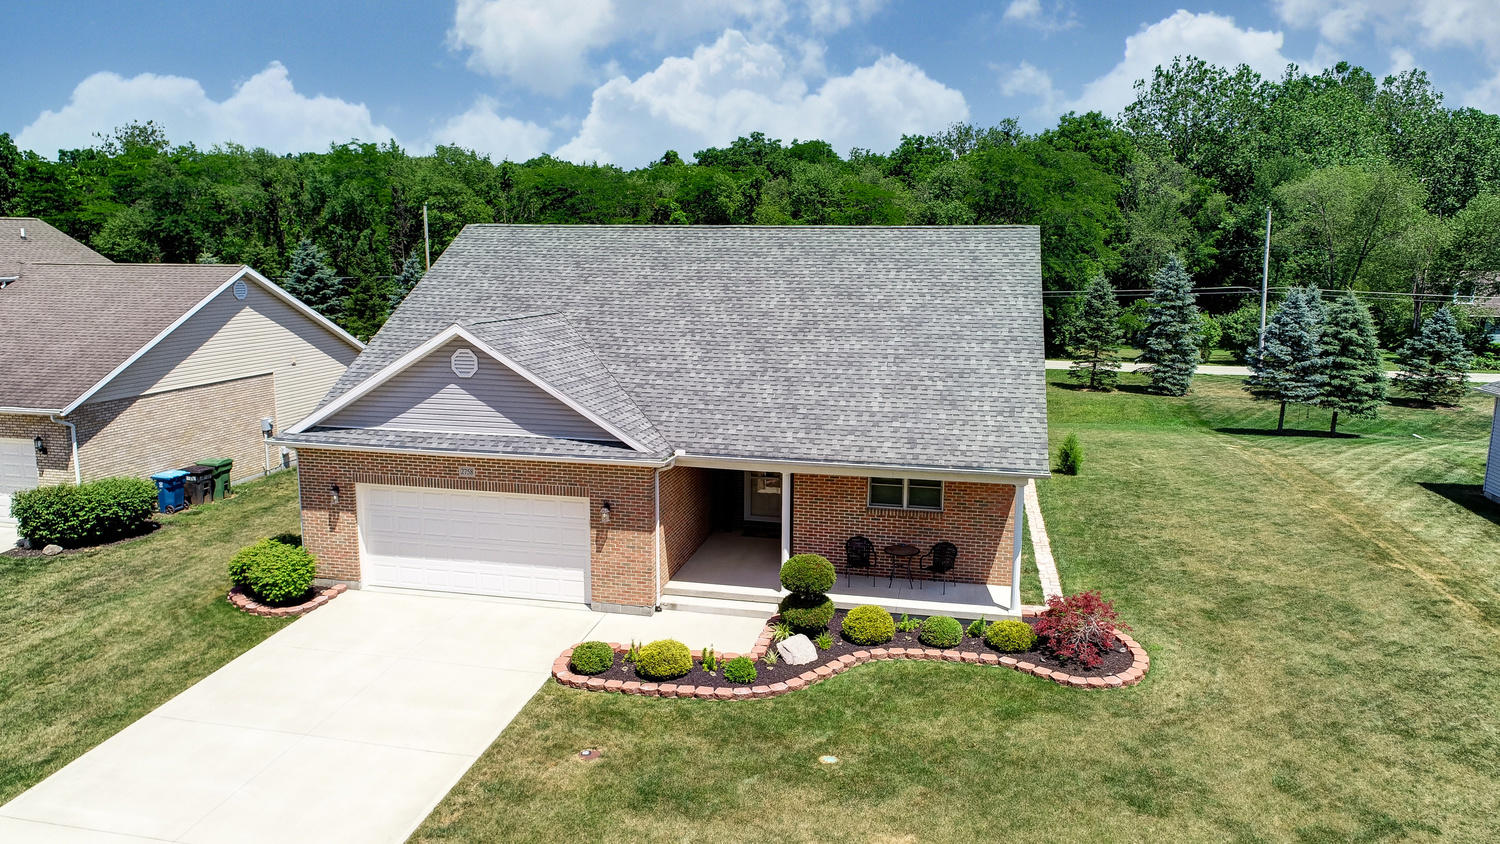 Photo 1 for 2758 Bridlewood Dr Sidney, OH 45365